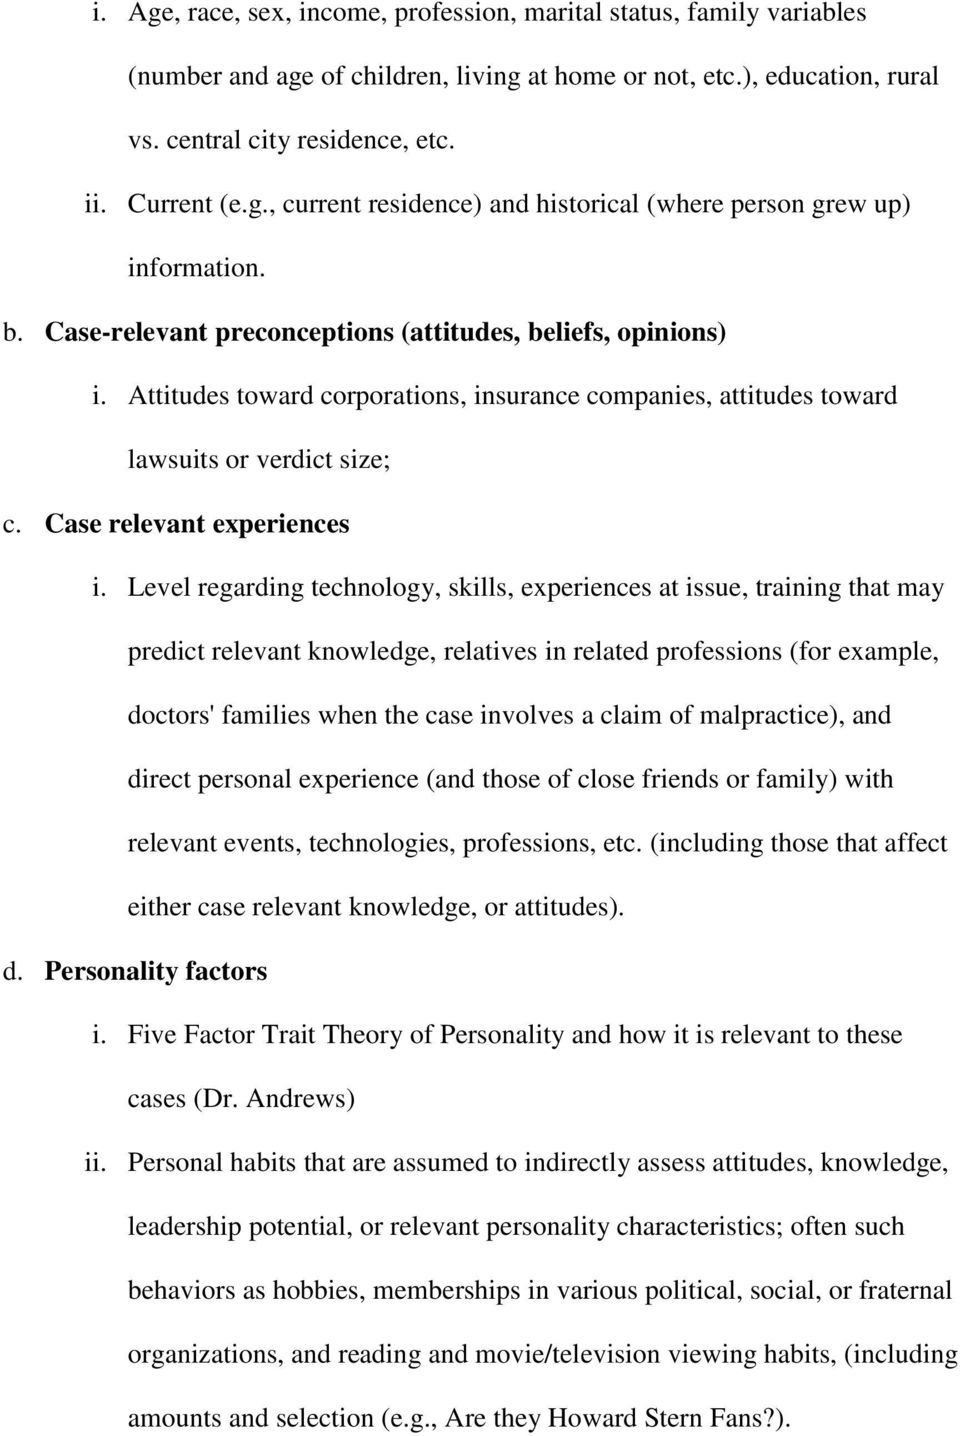 Level regarding technology, skills, experiences at issue, training that may predict relevant knowledge, relatives in related professions (for example, doctors' families when the case involves a claim